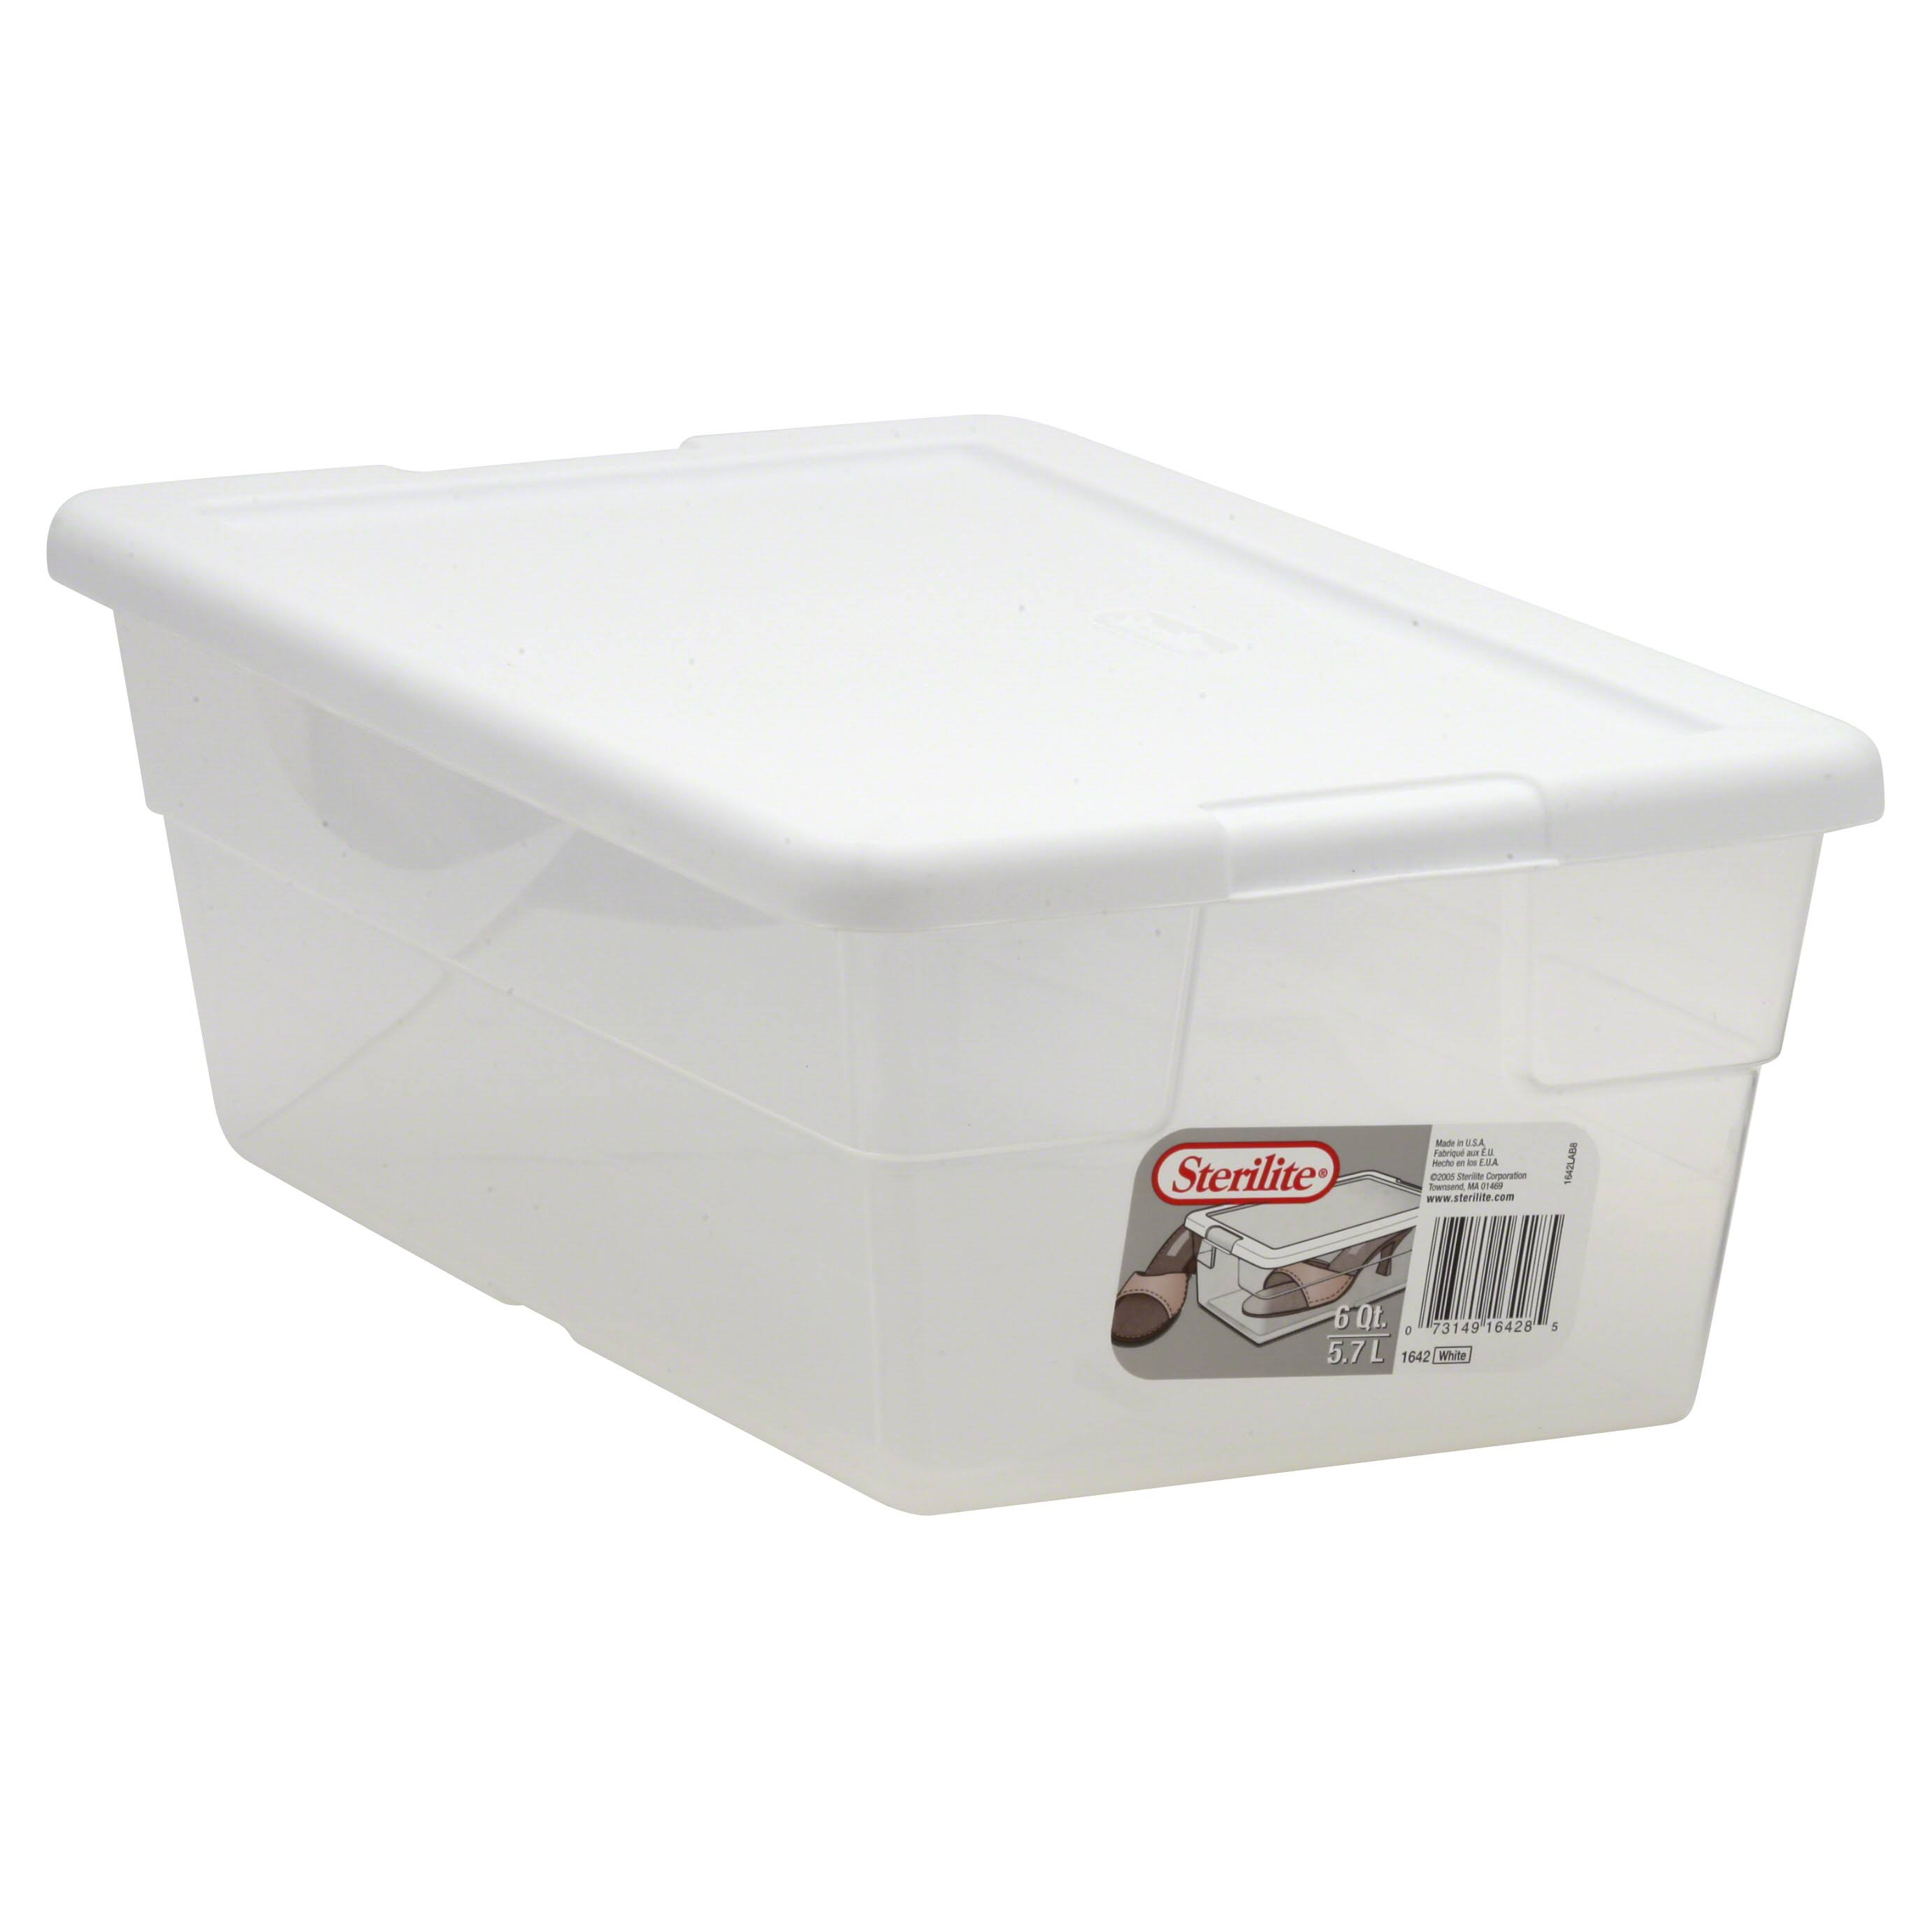 Sterilite Storage Container - White